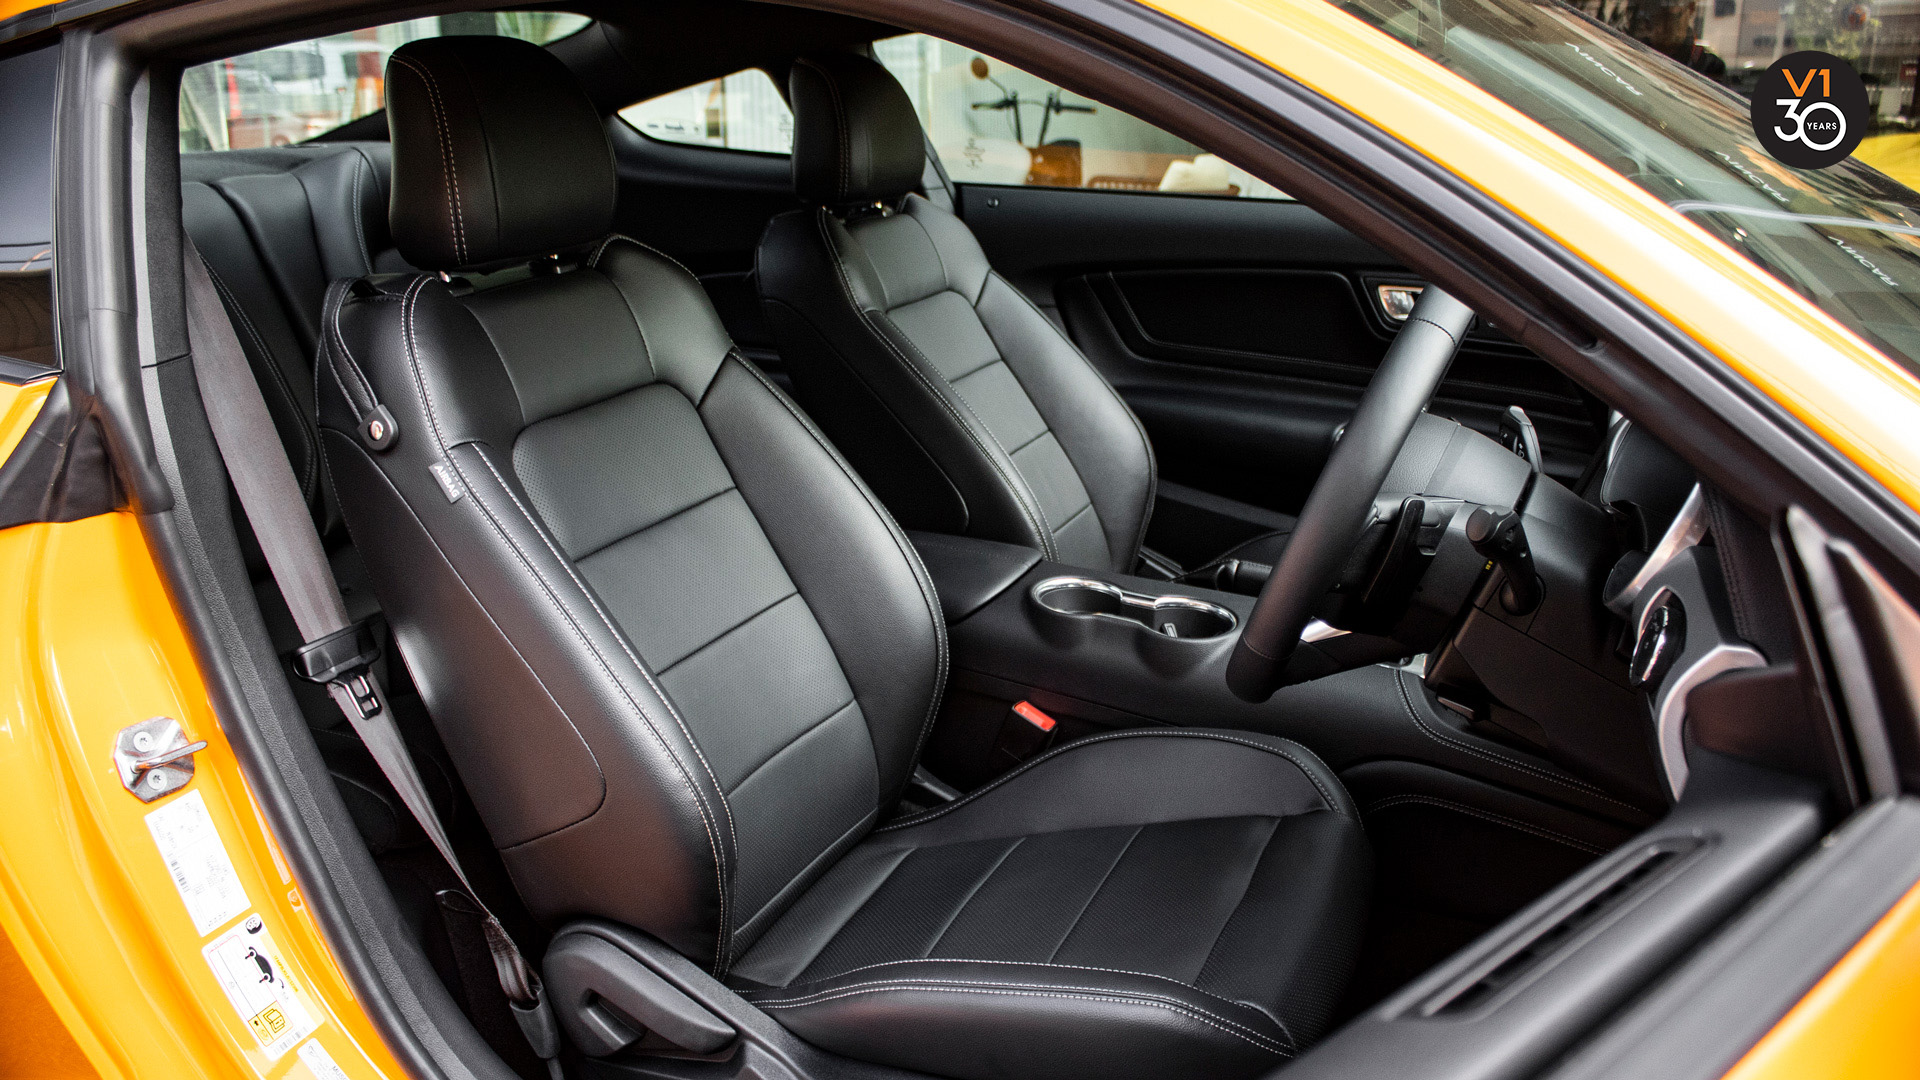 Ford Mustang 2.3 Ecoboost Fastback - Driver Seat